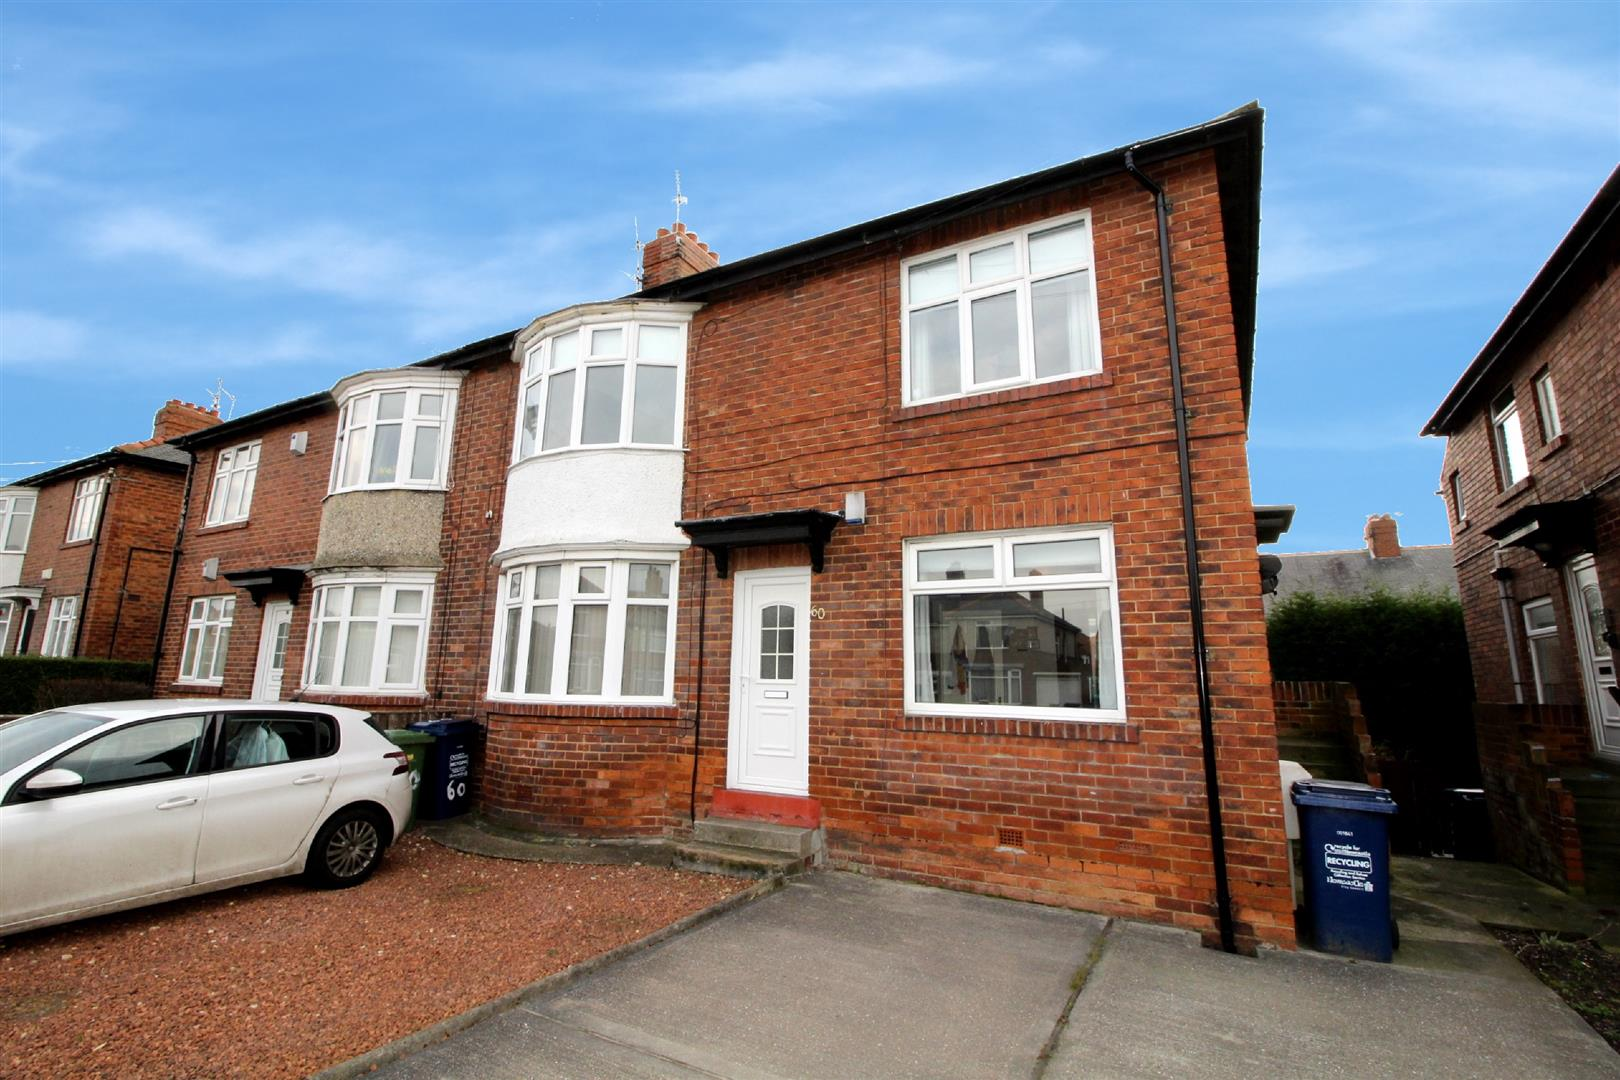 Bedroom flat for sale in newcastle upon tyne